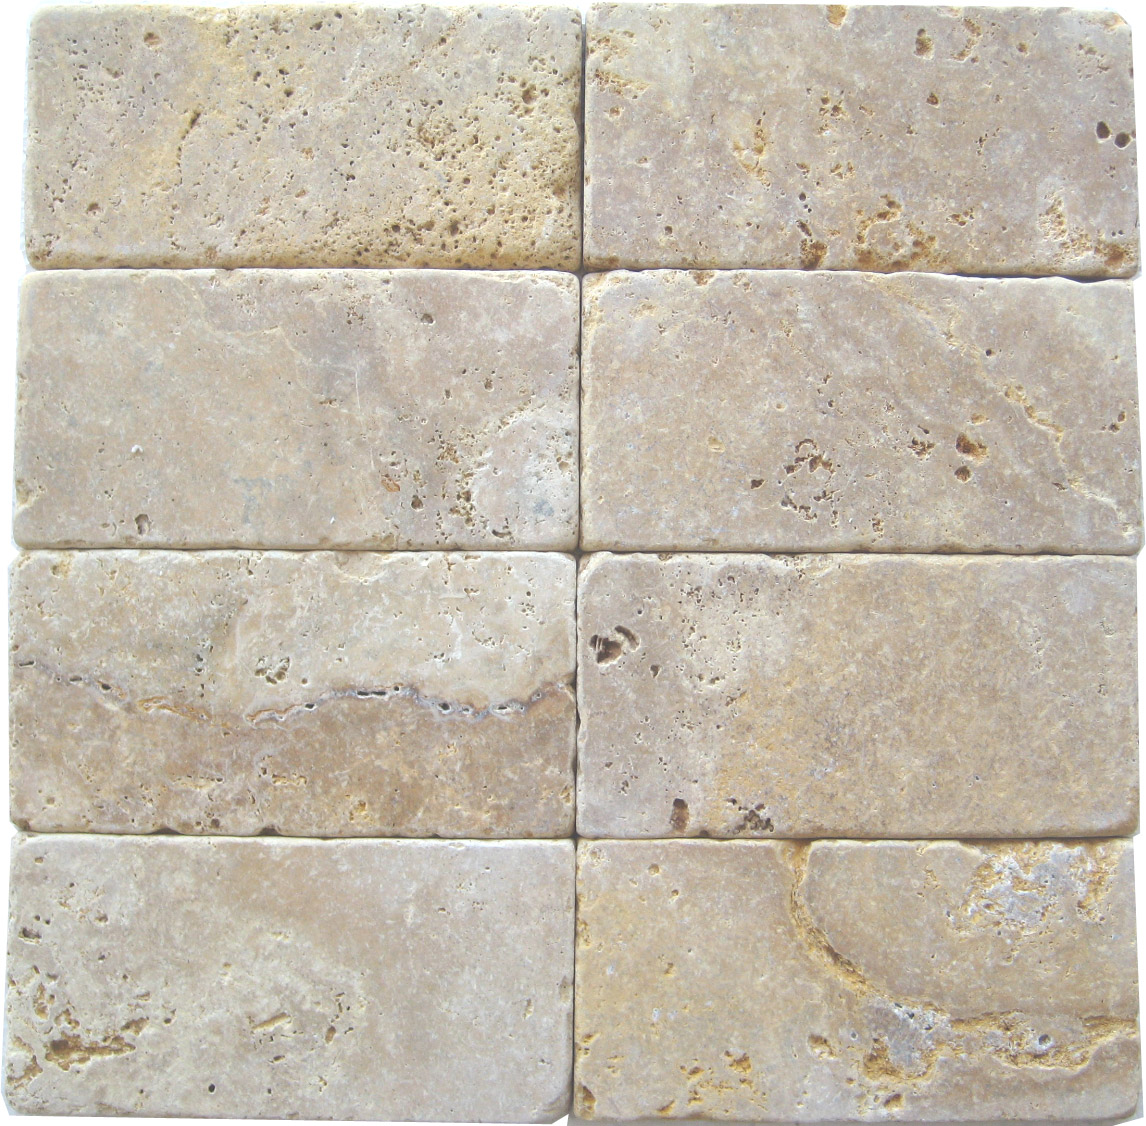 Tumbled stone tile for backsplash designs nalboor Stone backsplash tile